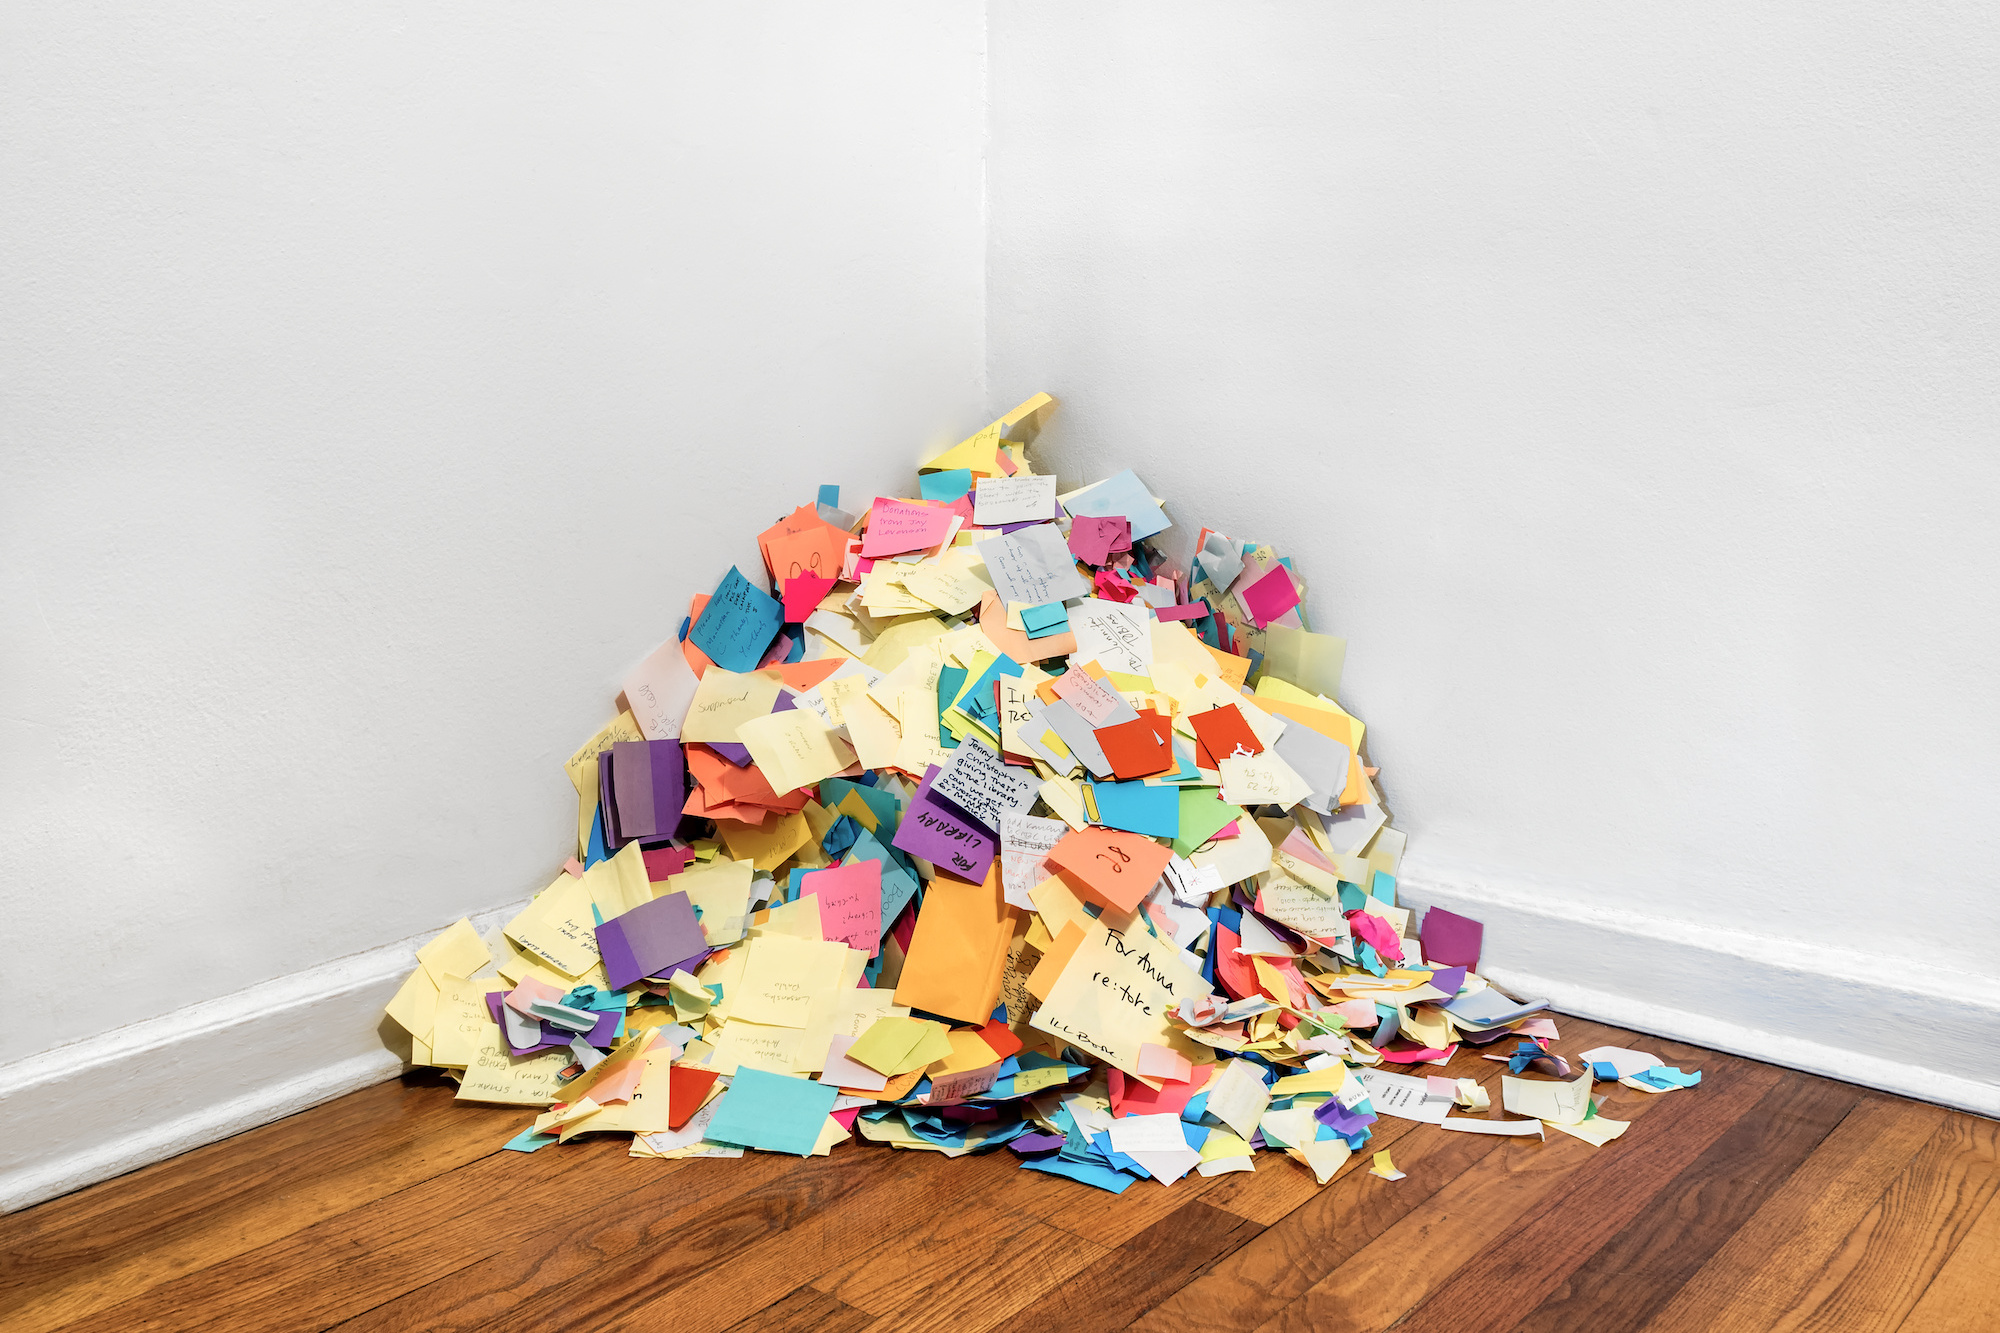 Post-its discarded by library researchers. Photo: Alejandro Merizalde